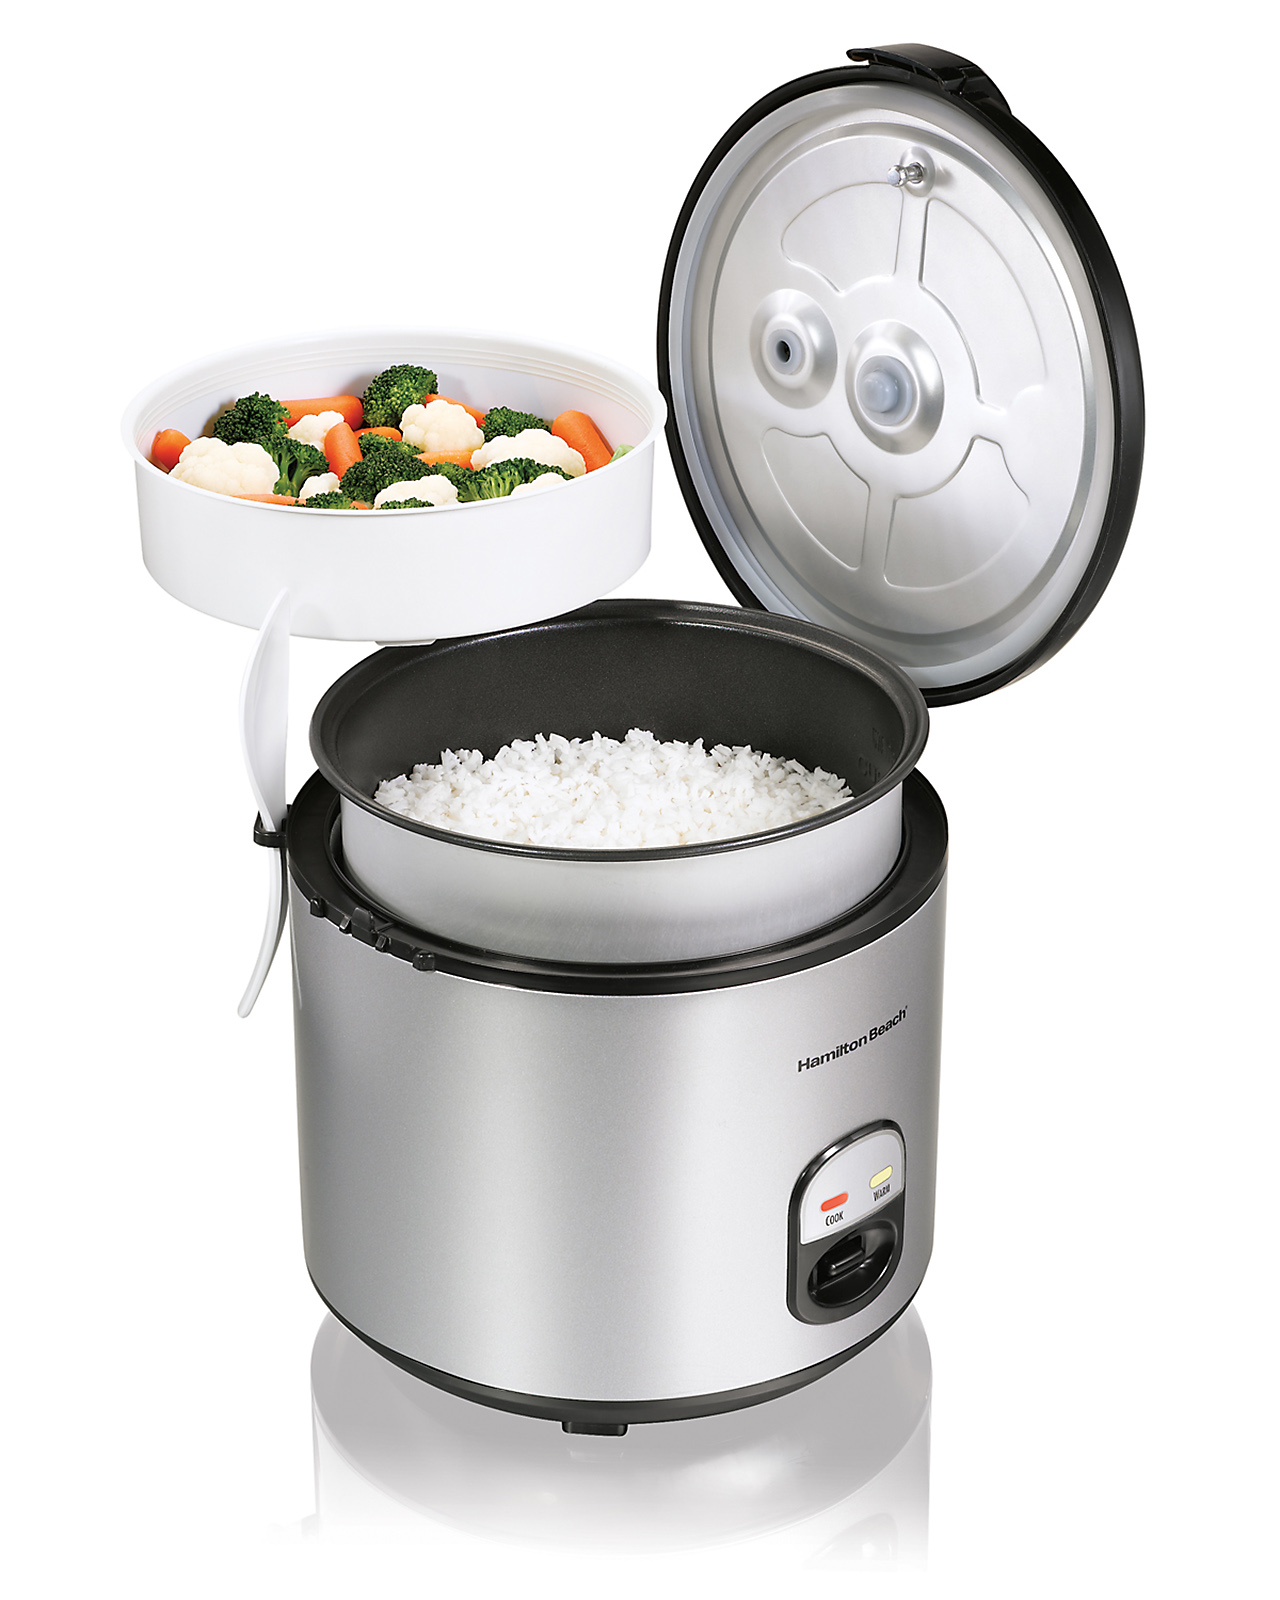 Hamilton Beach 4 to 20 Cup Rice Cooker & Food Steamer